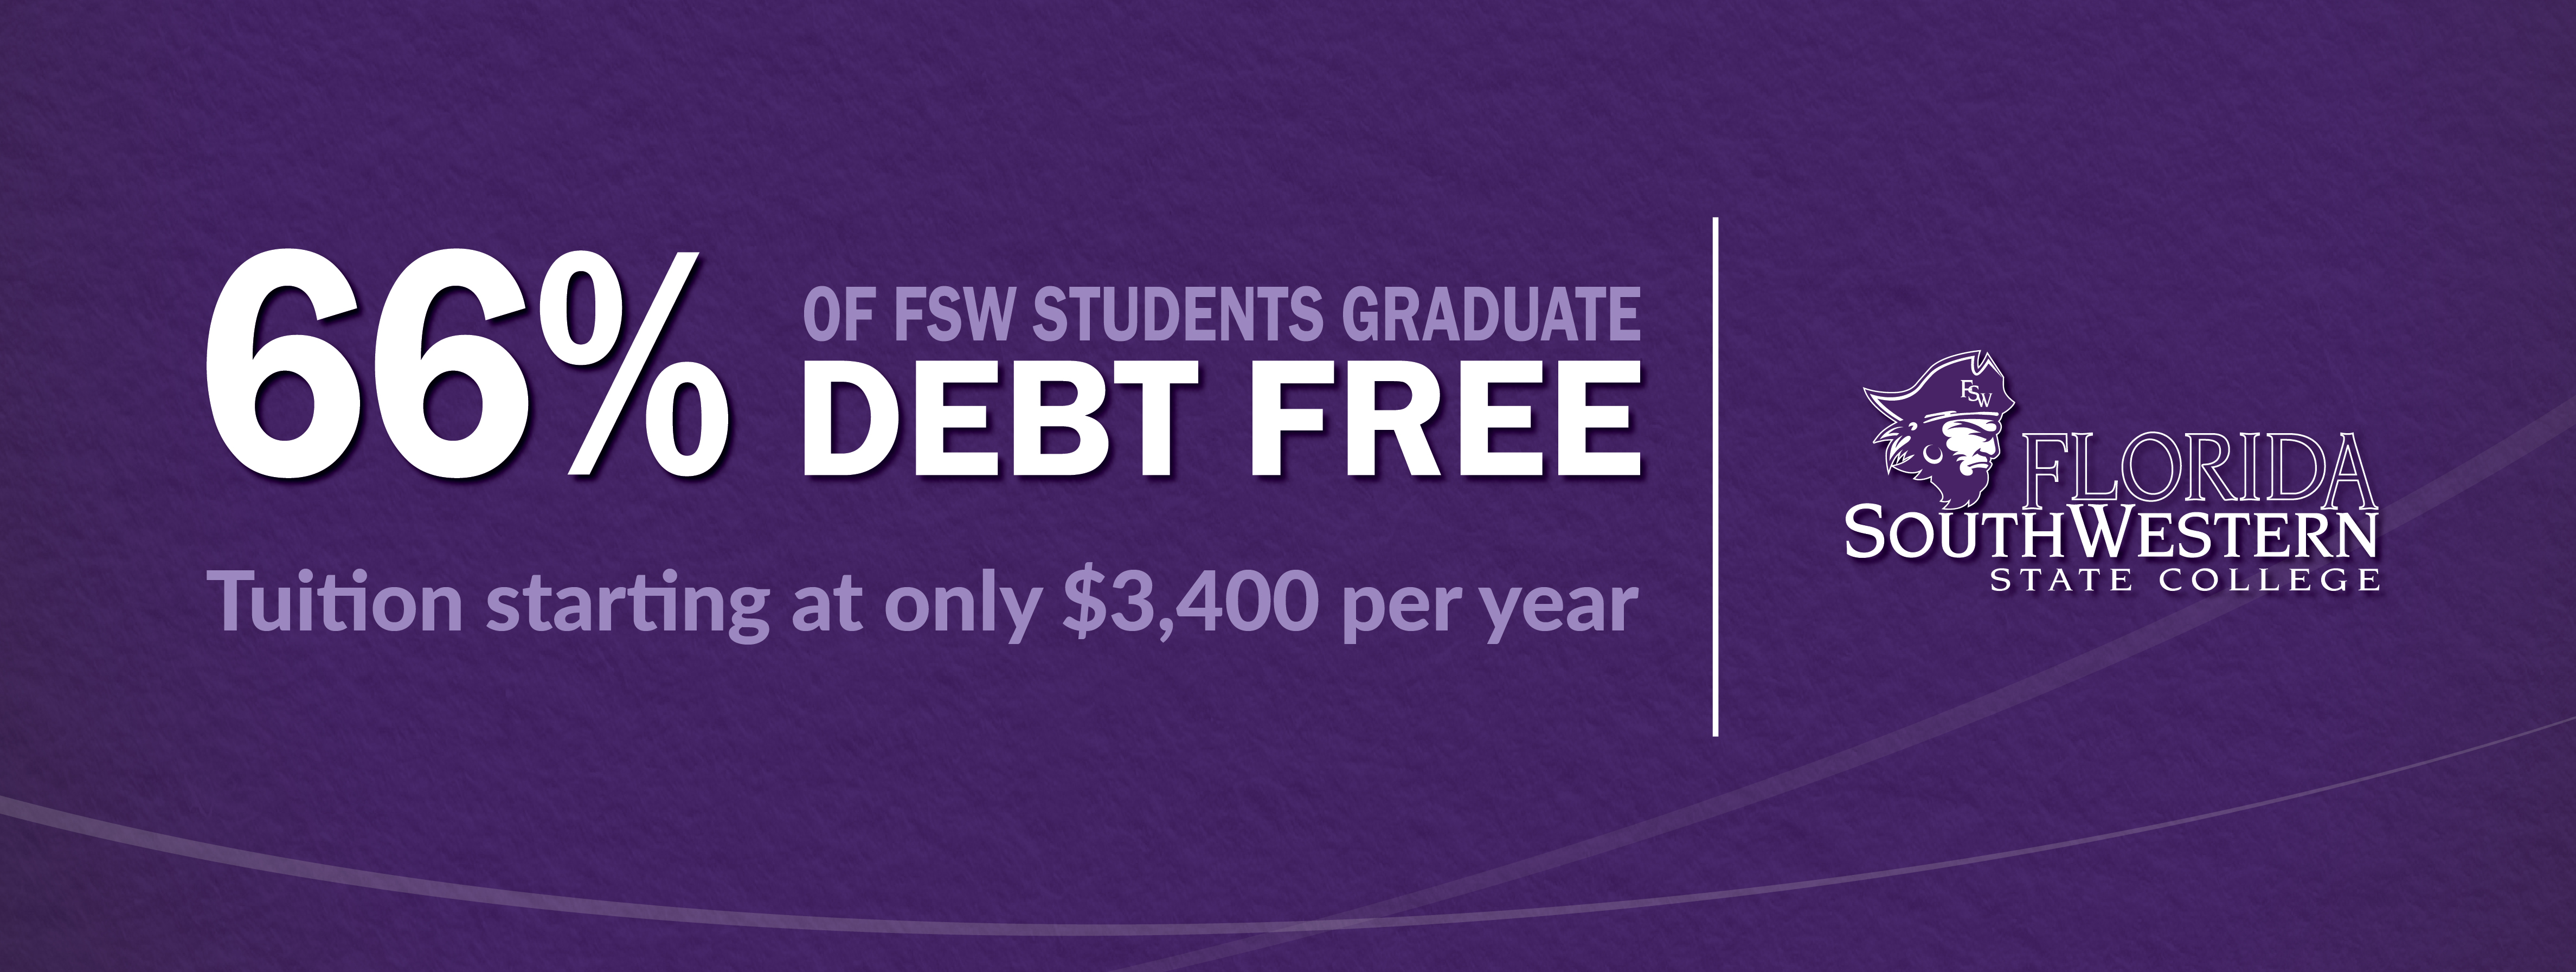 66 percent of FSW students graduate debt free. Tuition starting at only $3,400 per year.